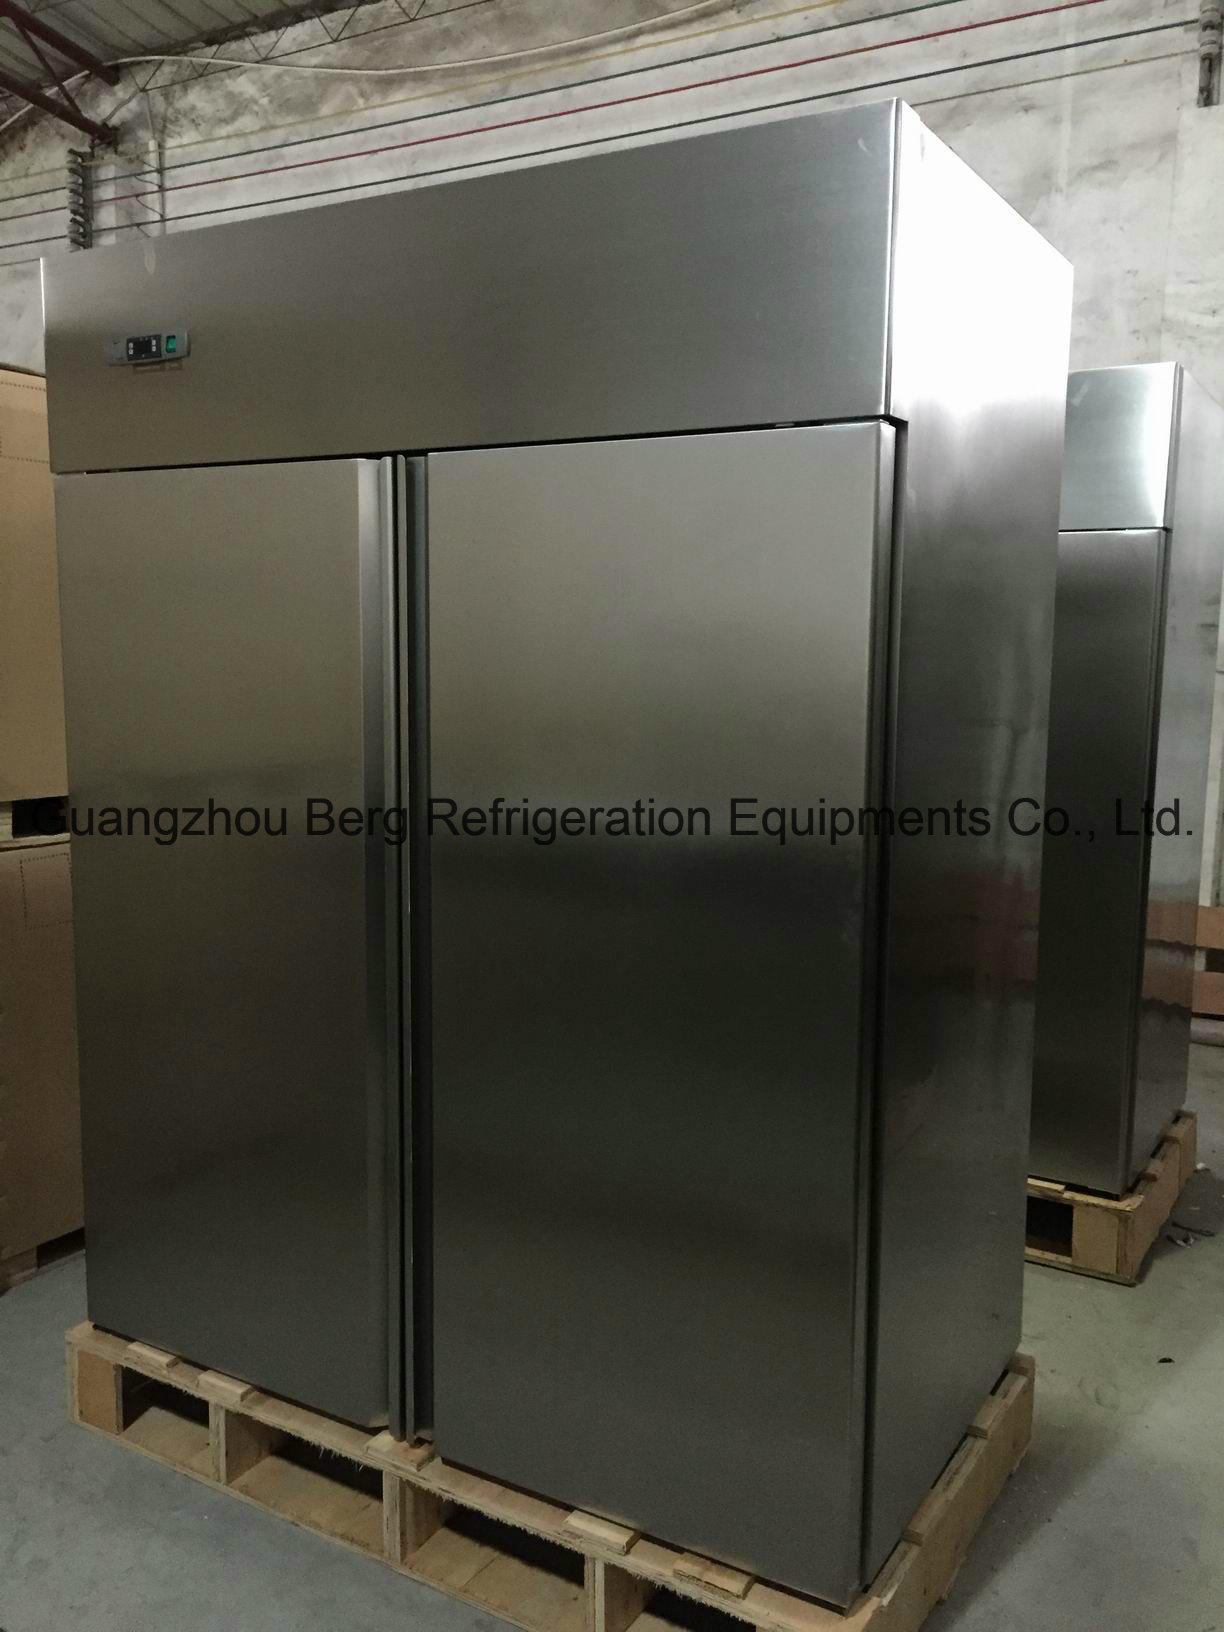 China Commercial Stainless Steel Restaurant Kitchen Fridge With Ce China Stainless Steel Refrigerator And Upright Refrigerator Price